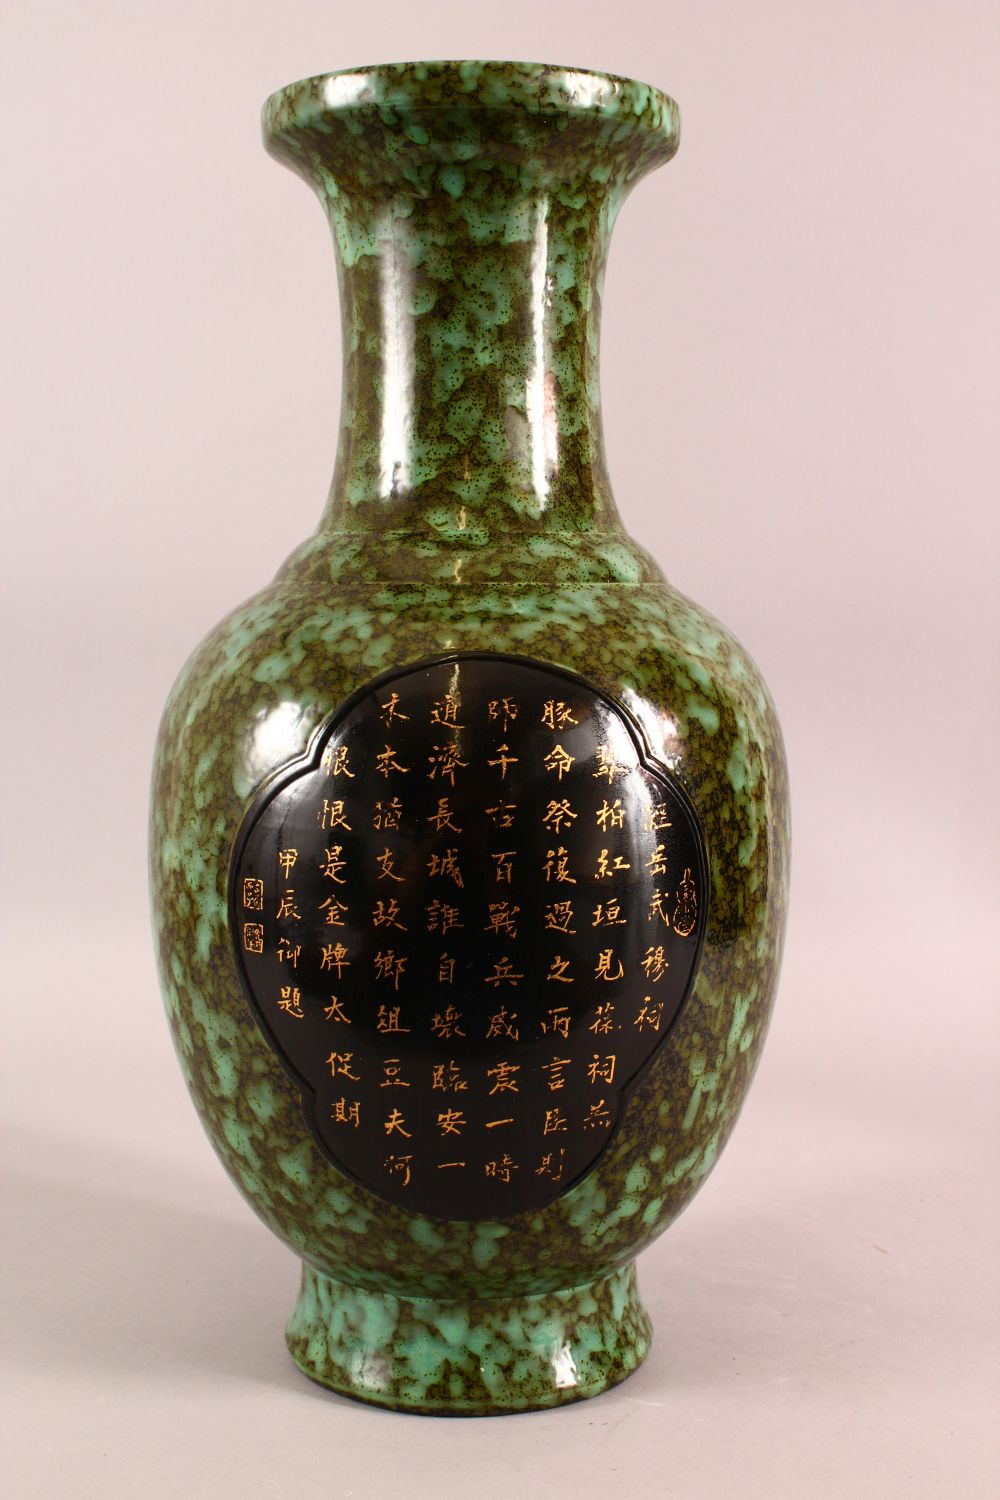 A CHINESE UNUSUAL GREEN GROUND VASE, the body with panels of calligraphic script, the base with four - Image 4 of 8